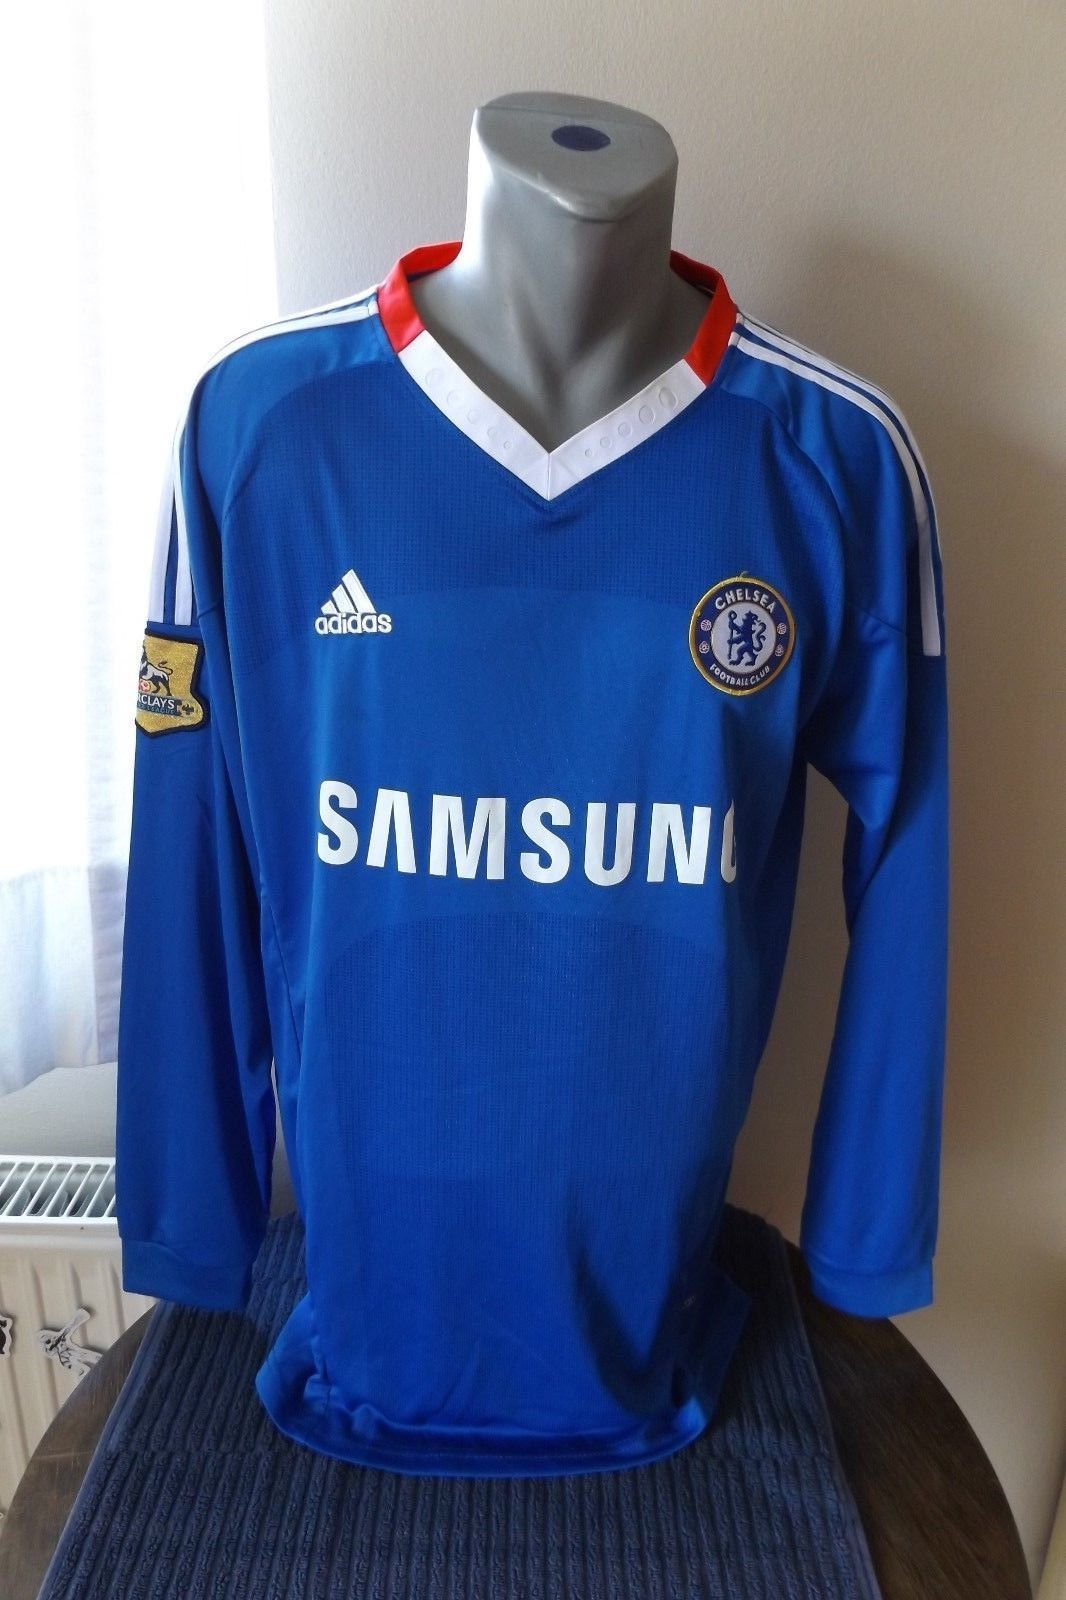 separation shoes f45e5 5a8f1 My eBay Active | Soccer Jerseys for Sale | Chelsea football ...